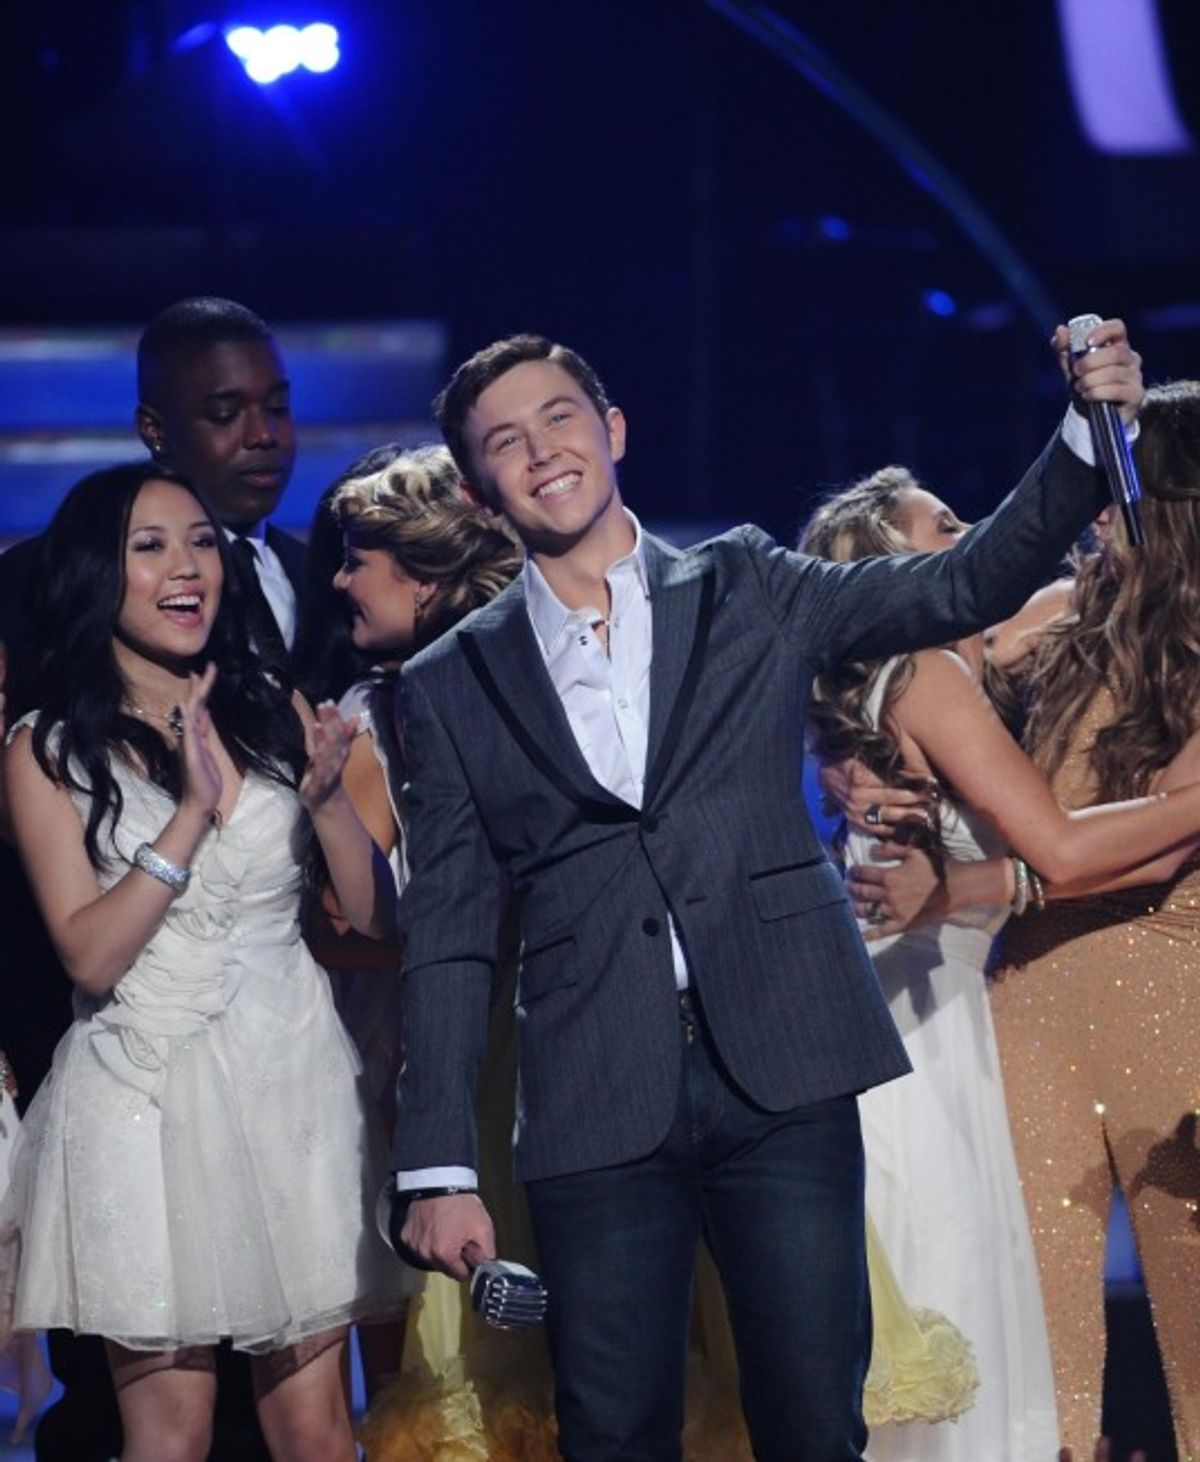 AMERICAN IDOL: Scotty McCreery learns that he is the next American Idol during the season ten AMERICAN IDOL GRAND FINALE at the Nokia Theatre on Weds. May 25, 2011 in Los Angeles, California.  CR: Michael Becker/FOX